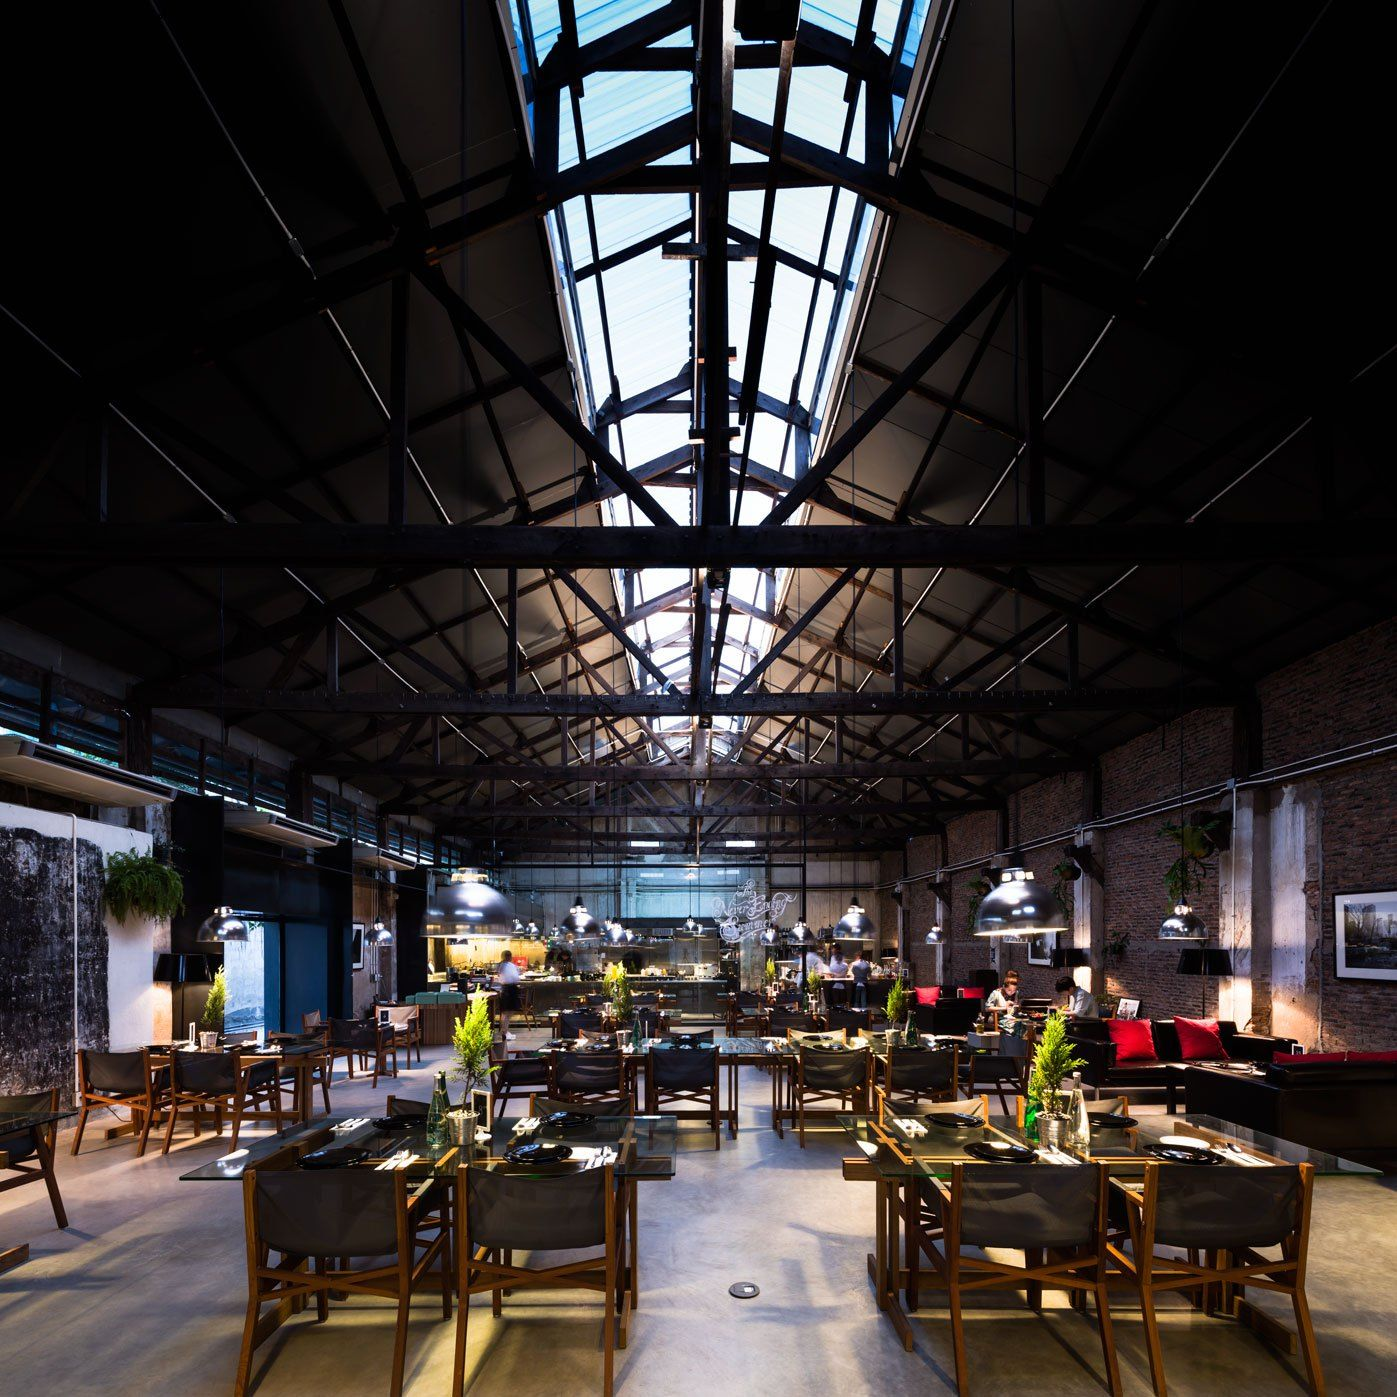 The Jam Factory. The Never Ending Summer & DBALP | Outdoor restaurant. Industrial architecture